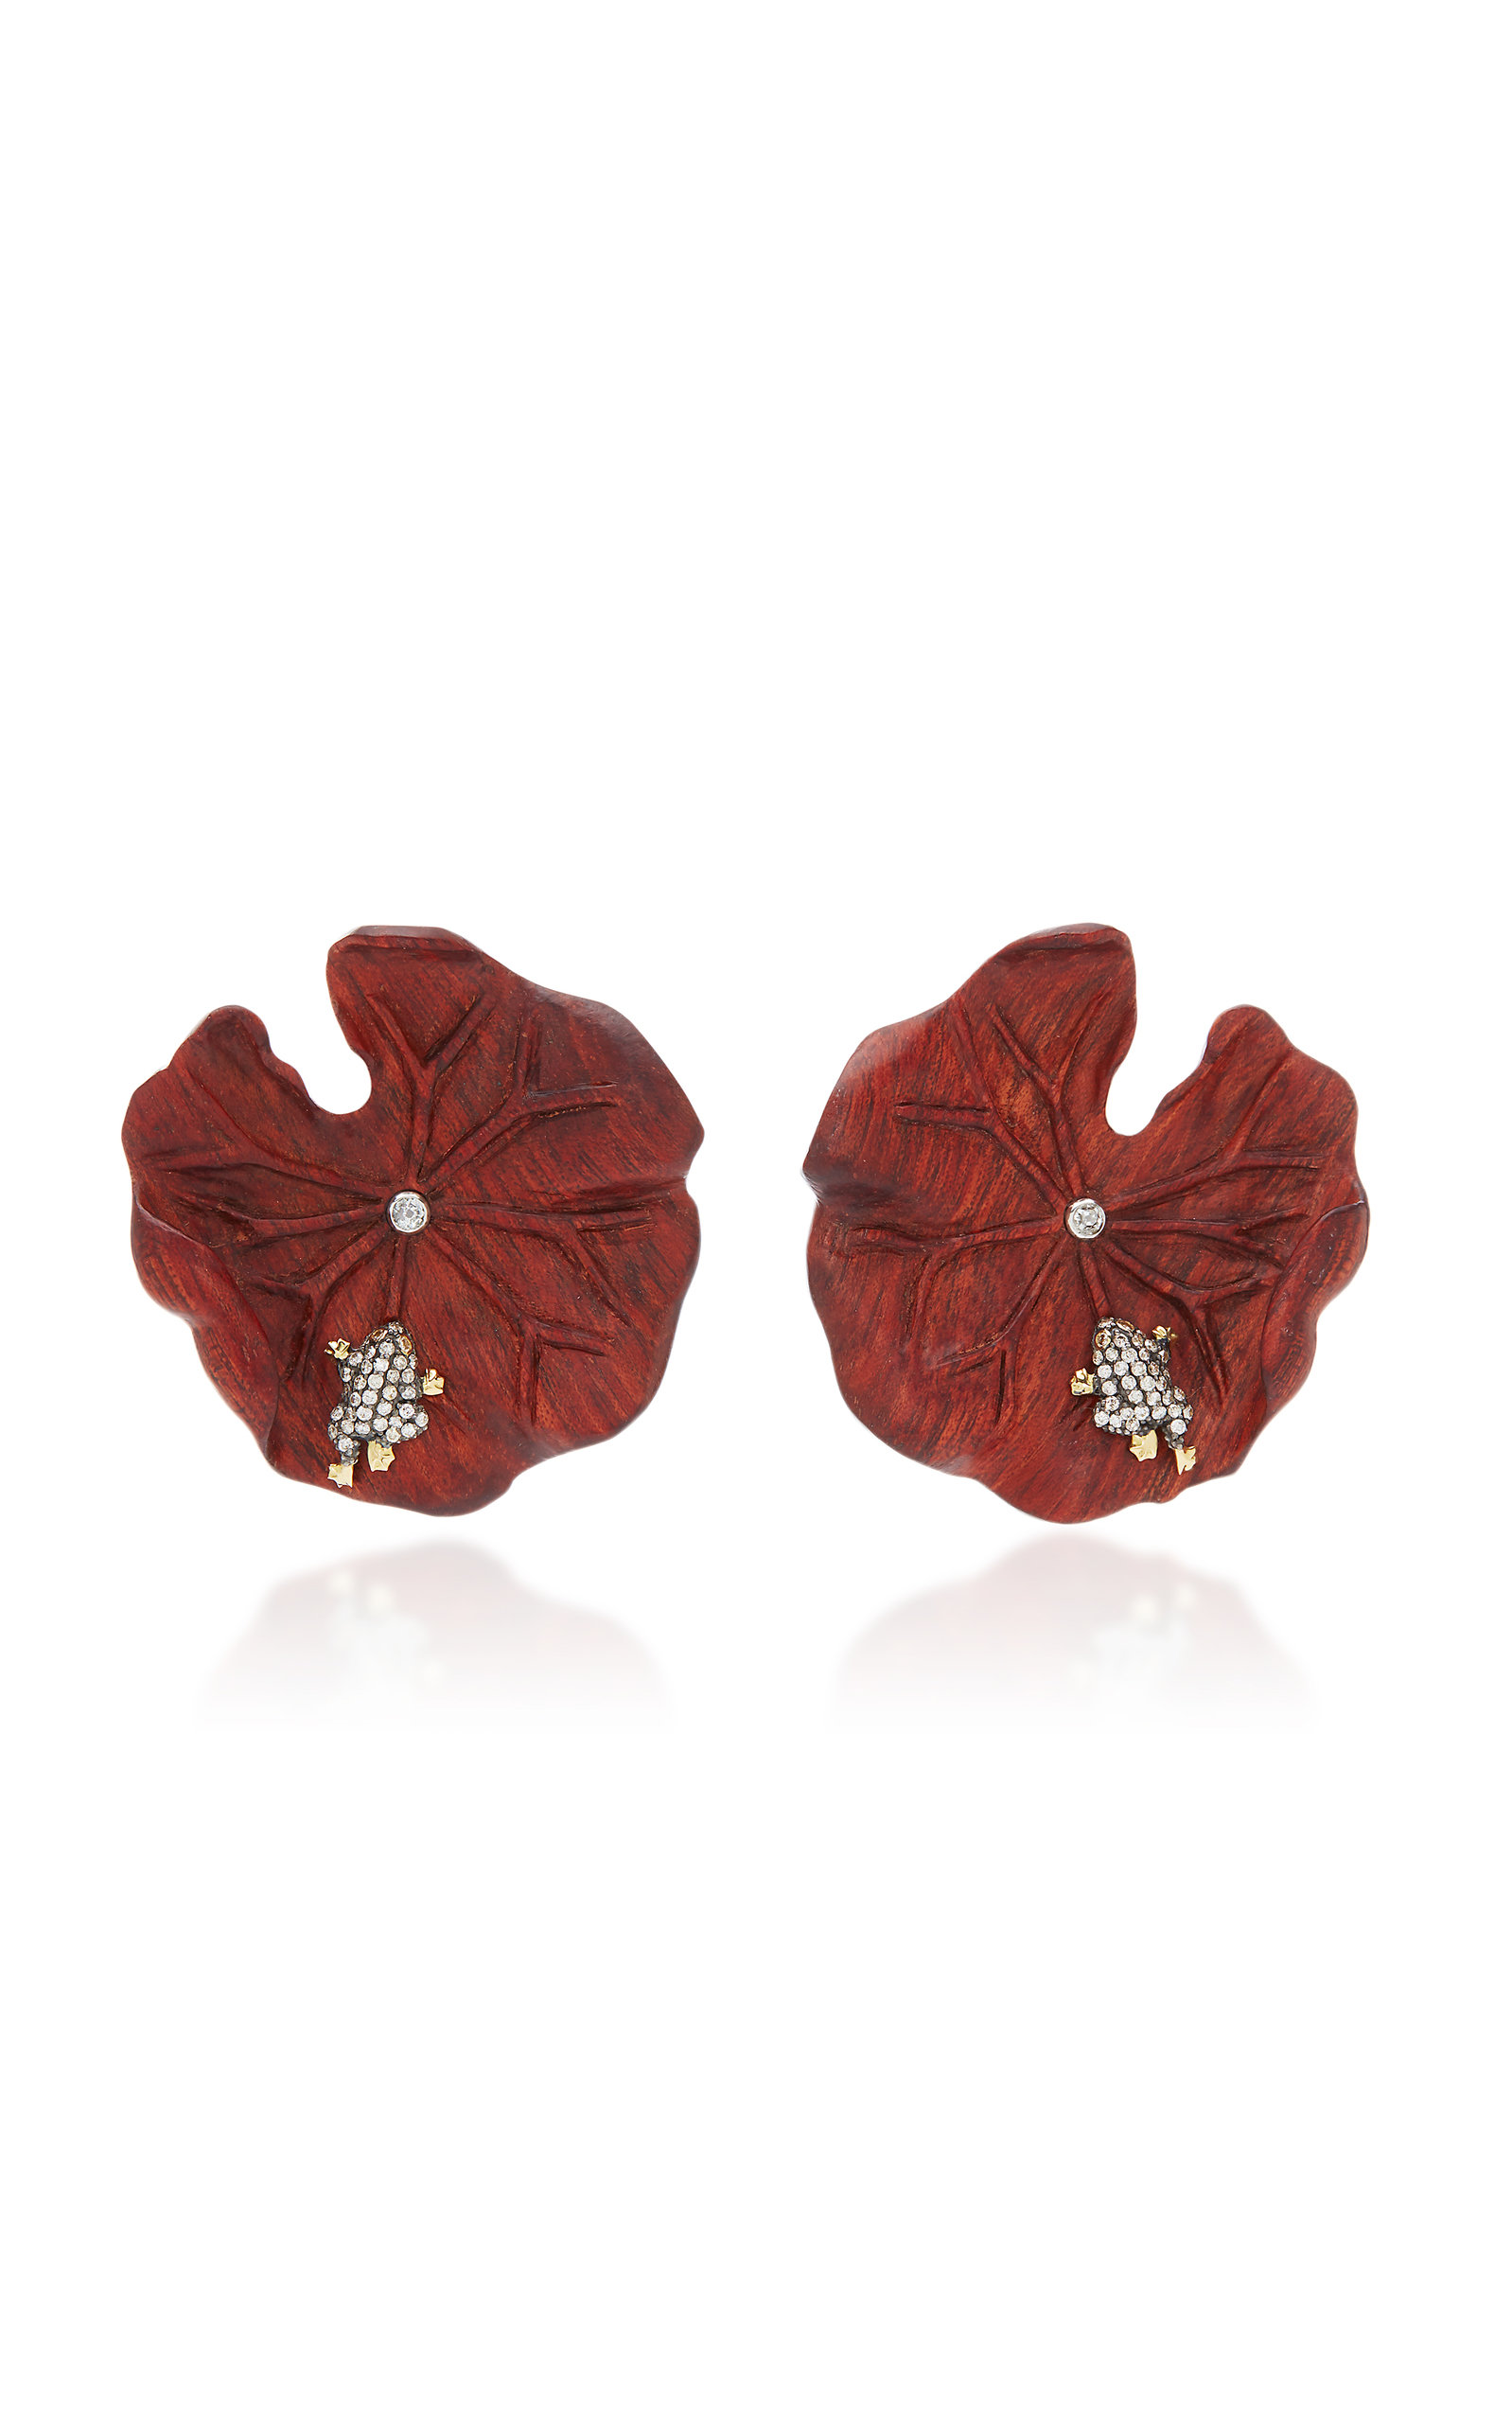 MO Exclusive: Marquetry Leaf Earrings Silvia Furmanovich f2rq9BkONd